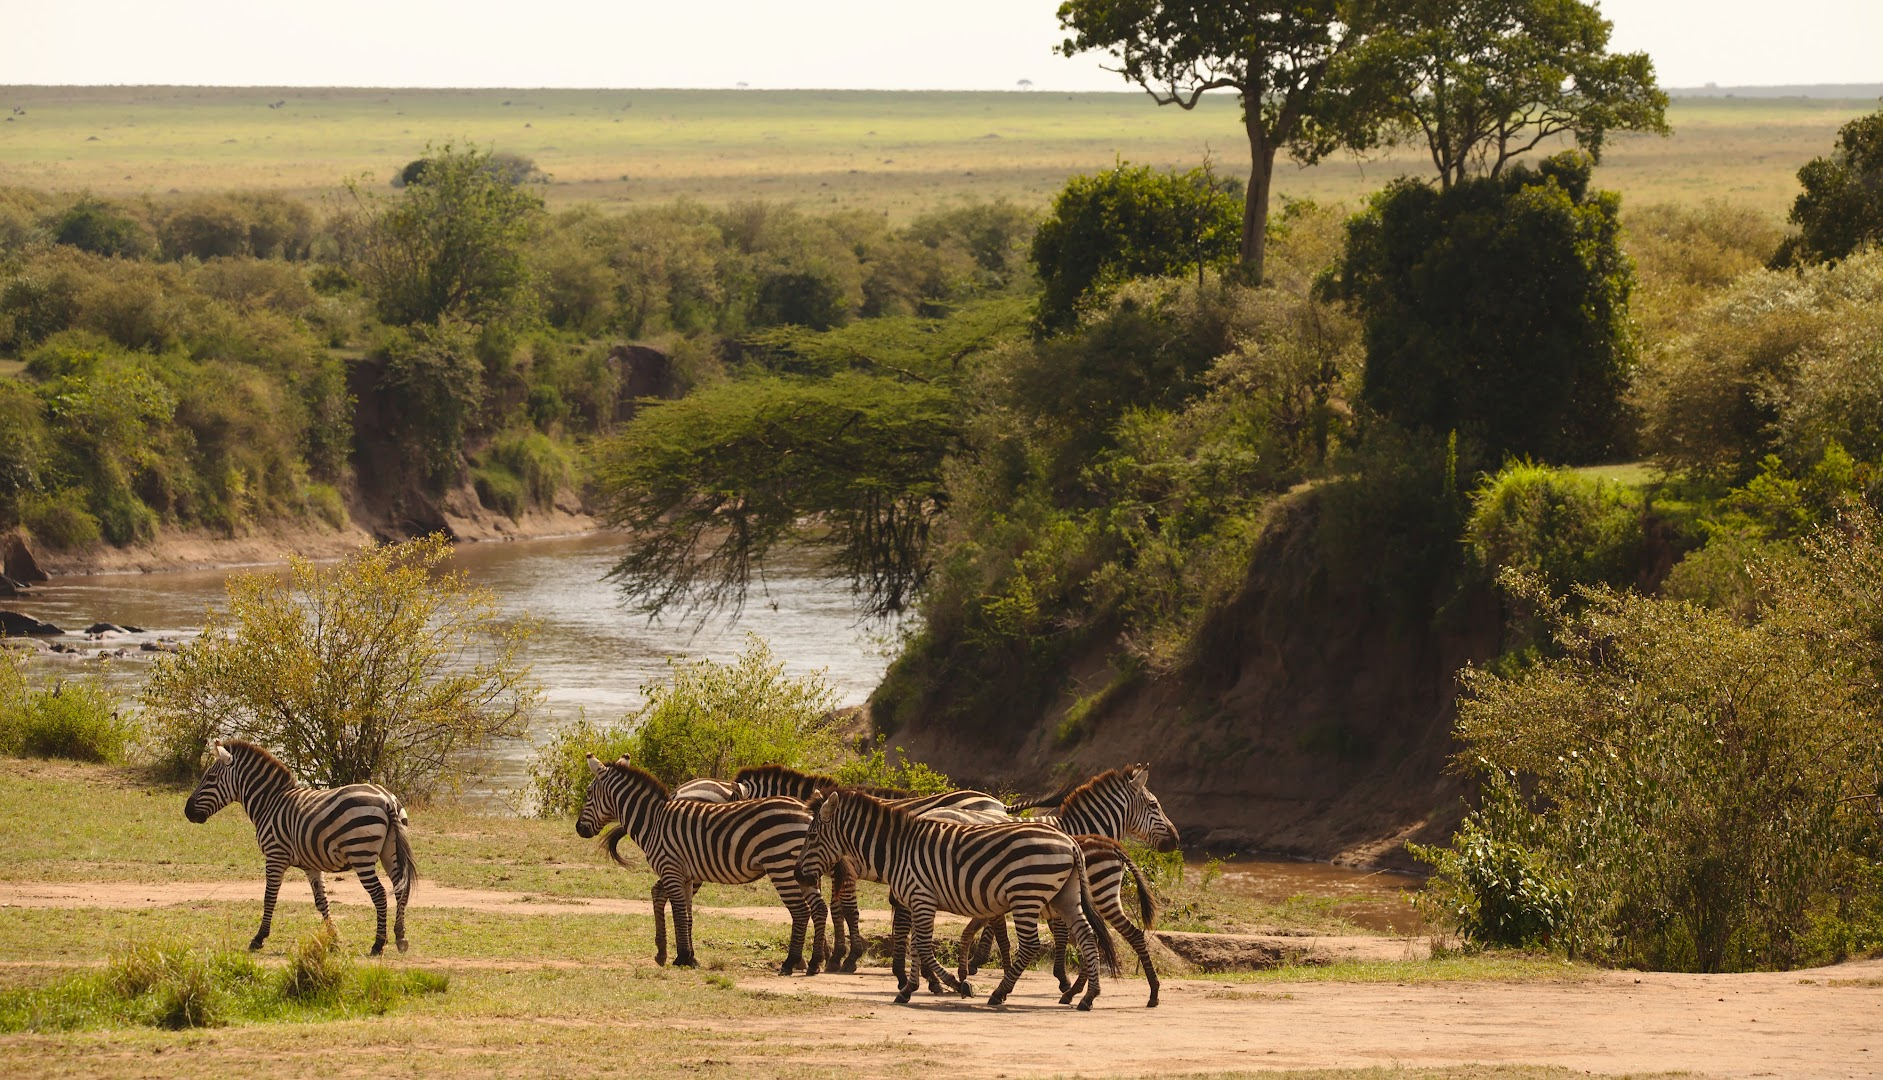 These zebras have already crossed the Mara river